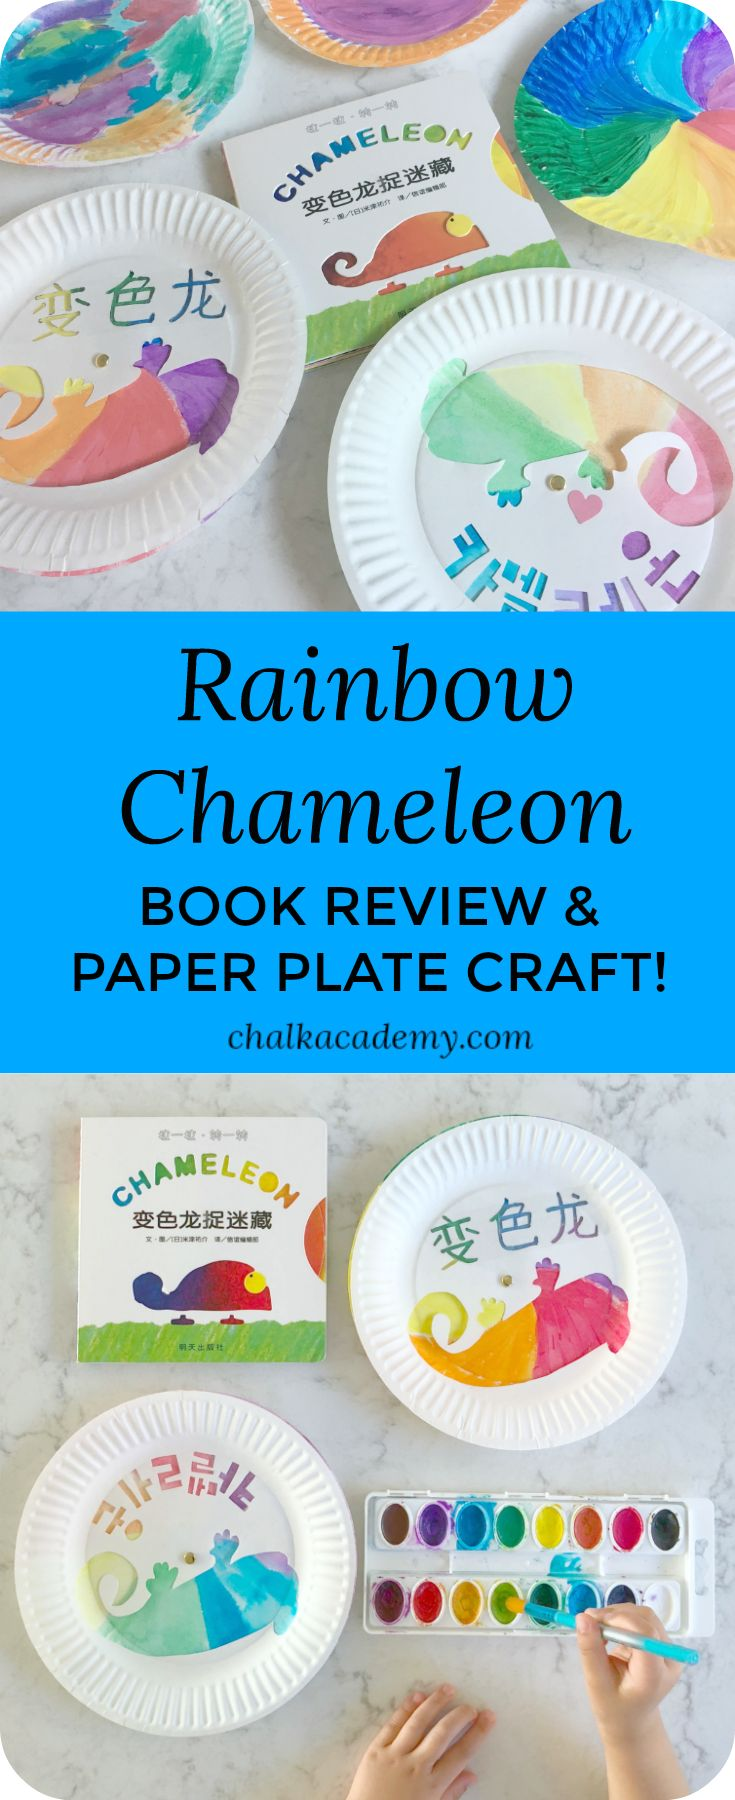 Rainbow Chameleon 变色龙捉迷藏 is an adorable book about a chameleon who is looking for his friend.  The interactive tabs and colorful spinning wheels show how the chameleon adapts to its environment during this game of hide and seek!  A spinning paper plate chameleon craft also extends the learning fun! Chinese book for kids | animal craft | preschool | toddler | kindergarten | homeschool